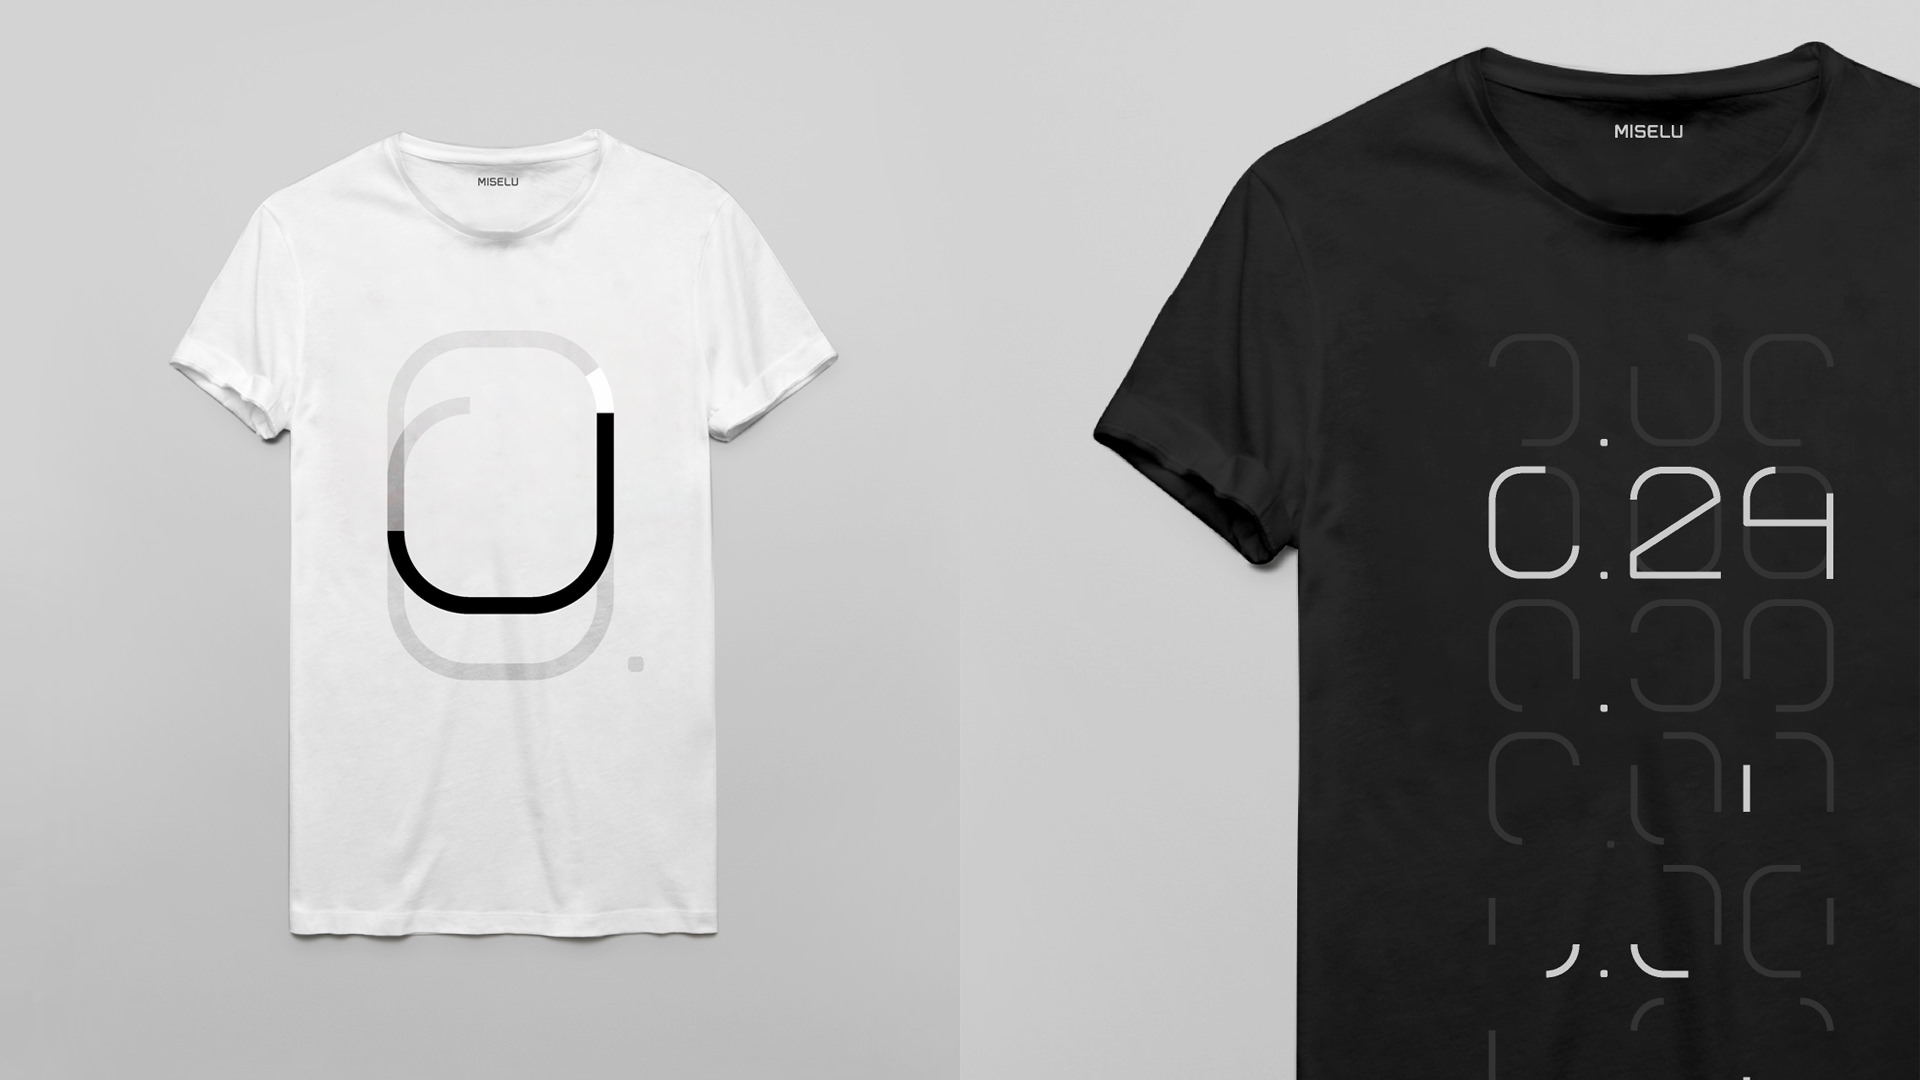 10+-Examples-of-Minimalist-Design-to-Inspire-Your-Own-Creations-T-Shirts